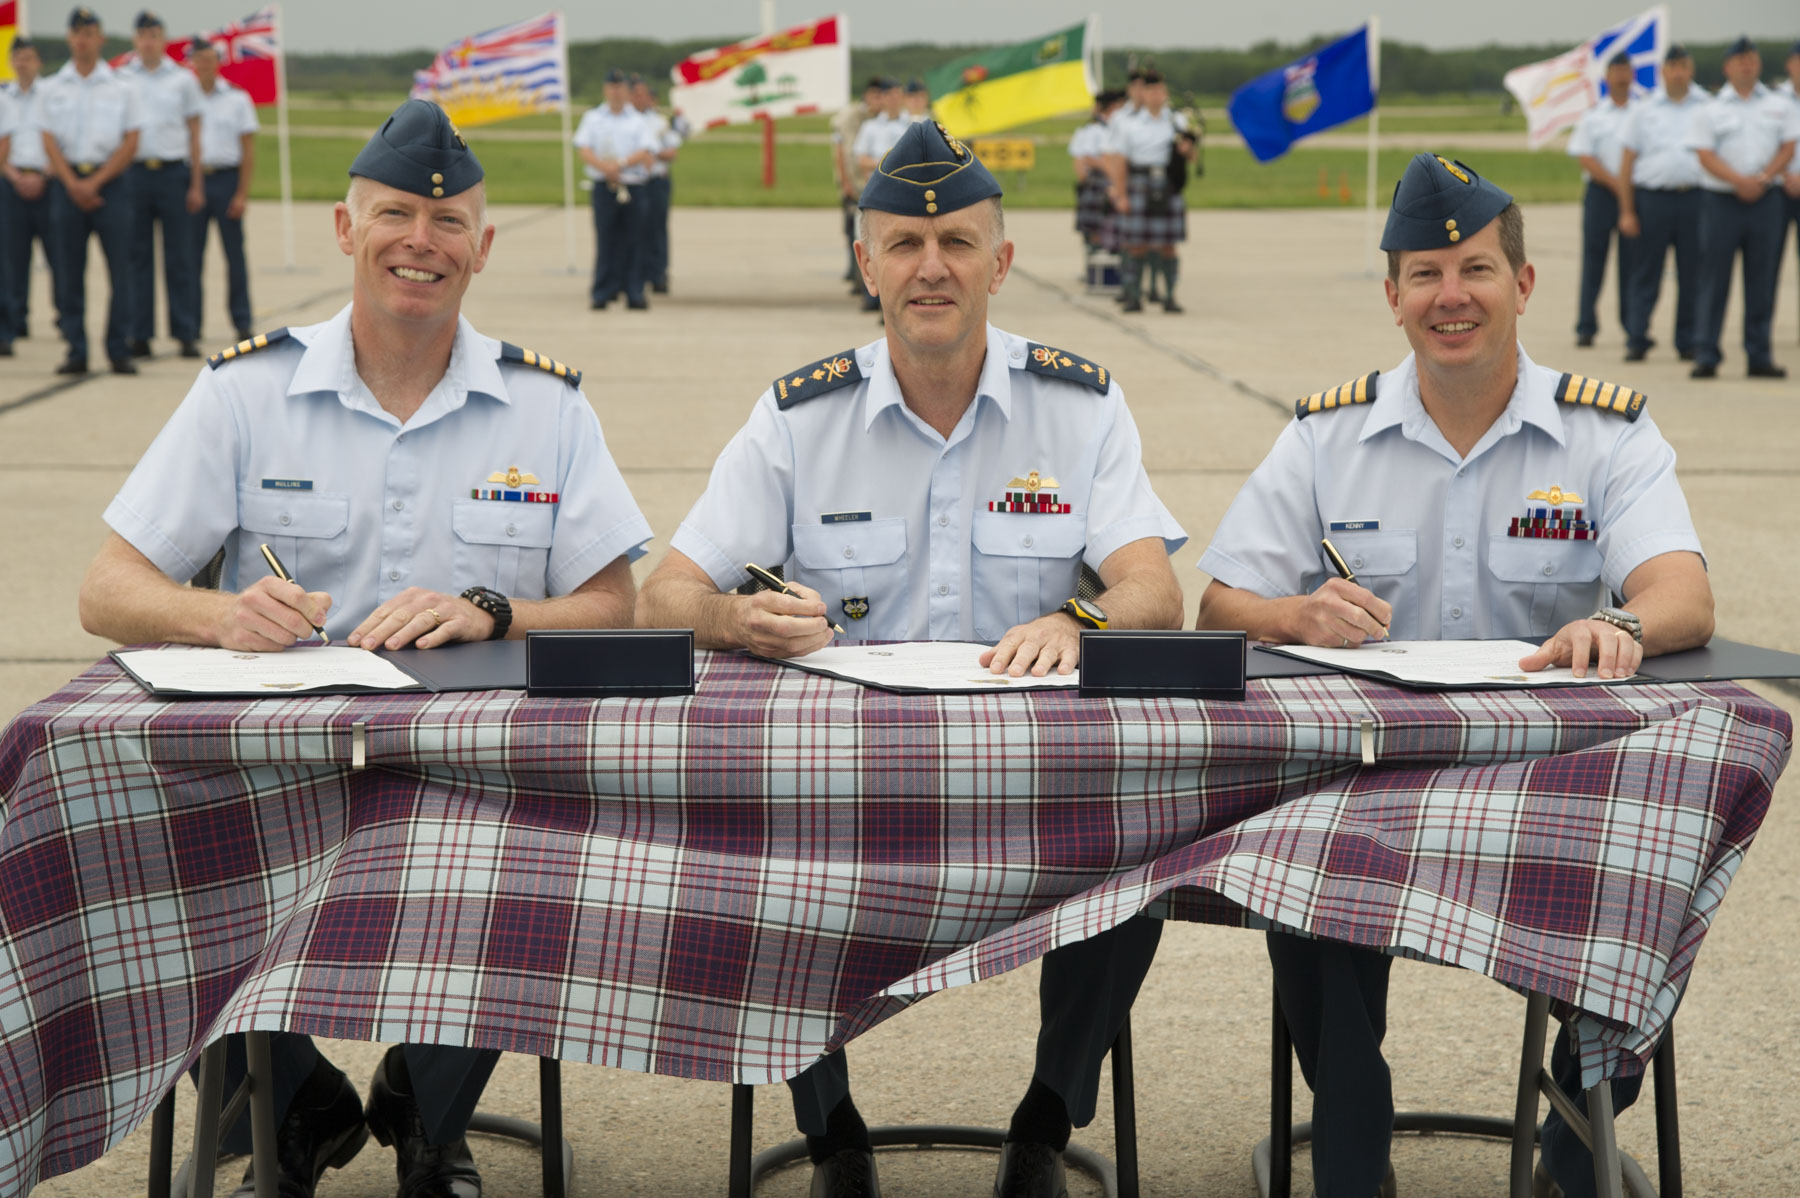 On June 30, 2015, Lieutenant-Colonel Joseph Mullins (left), Commanding Officer of 401 Tactical Fighter Squadron; Major-General David Wheeler, 1 Canadian Air Division Commander; and Colonel Eric Kenny, Wing Commander of 4 Wing, sign the stand-up scrolls for 401 Tactical Fighter Squadron.